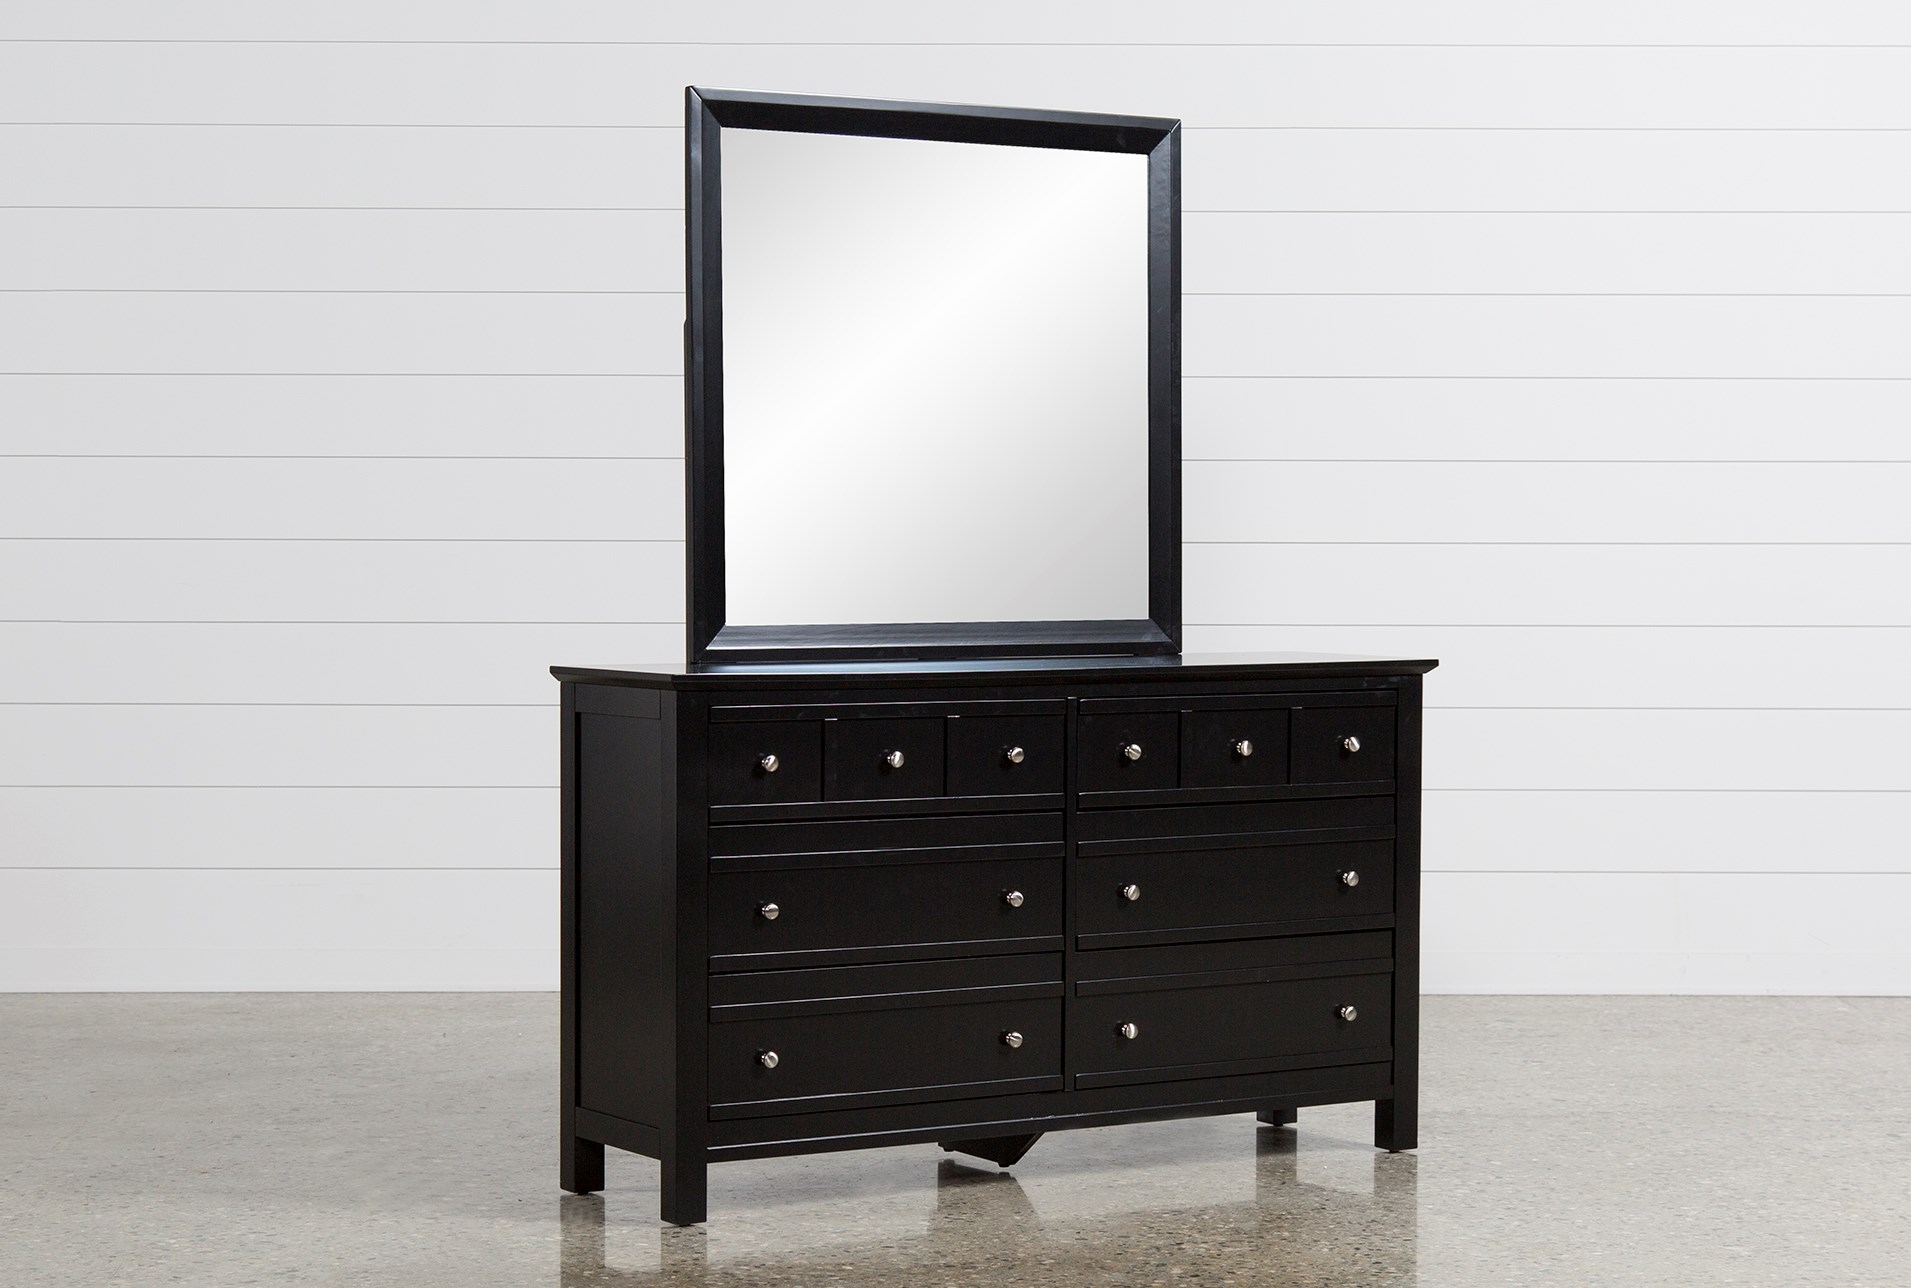 black dresser with mirror Bayside Black Dresser/Mirror | Living Spaces black dresser with mirror